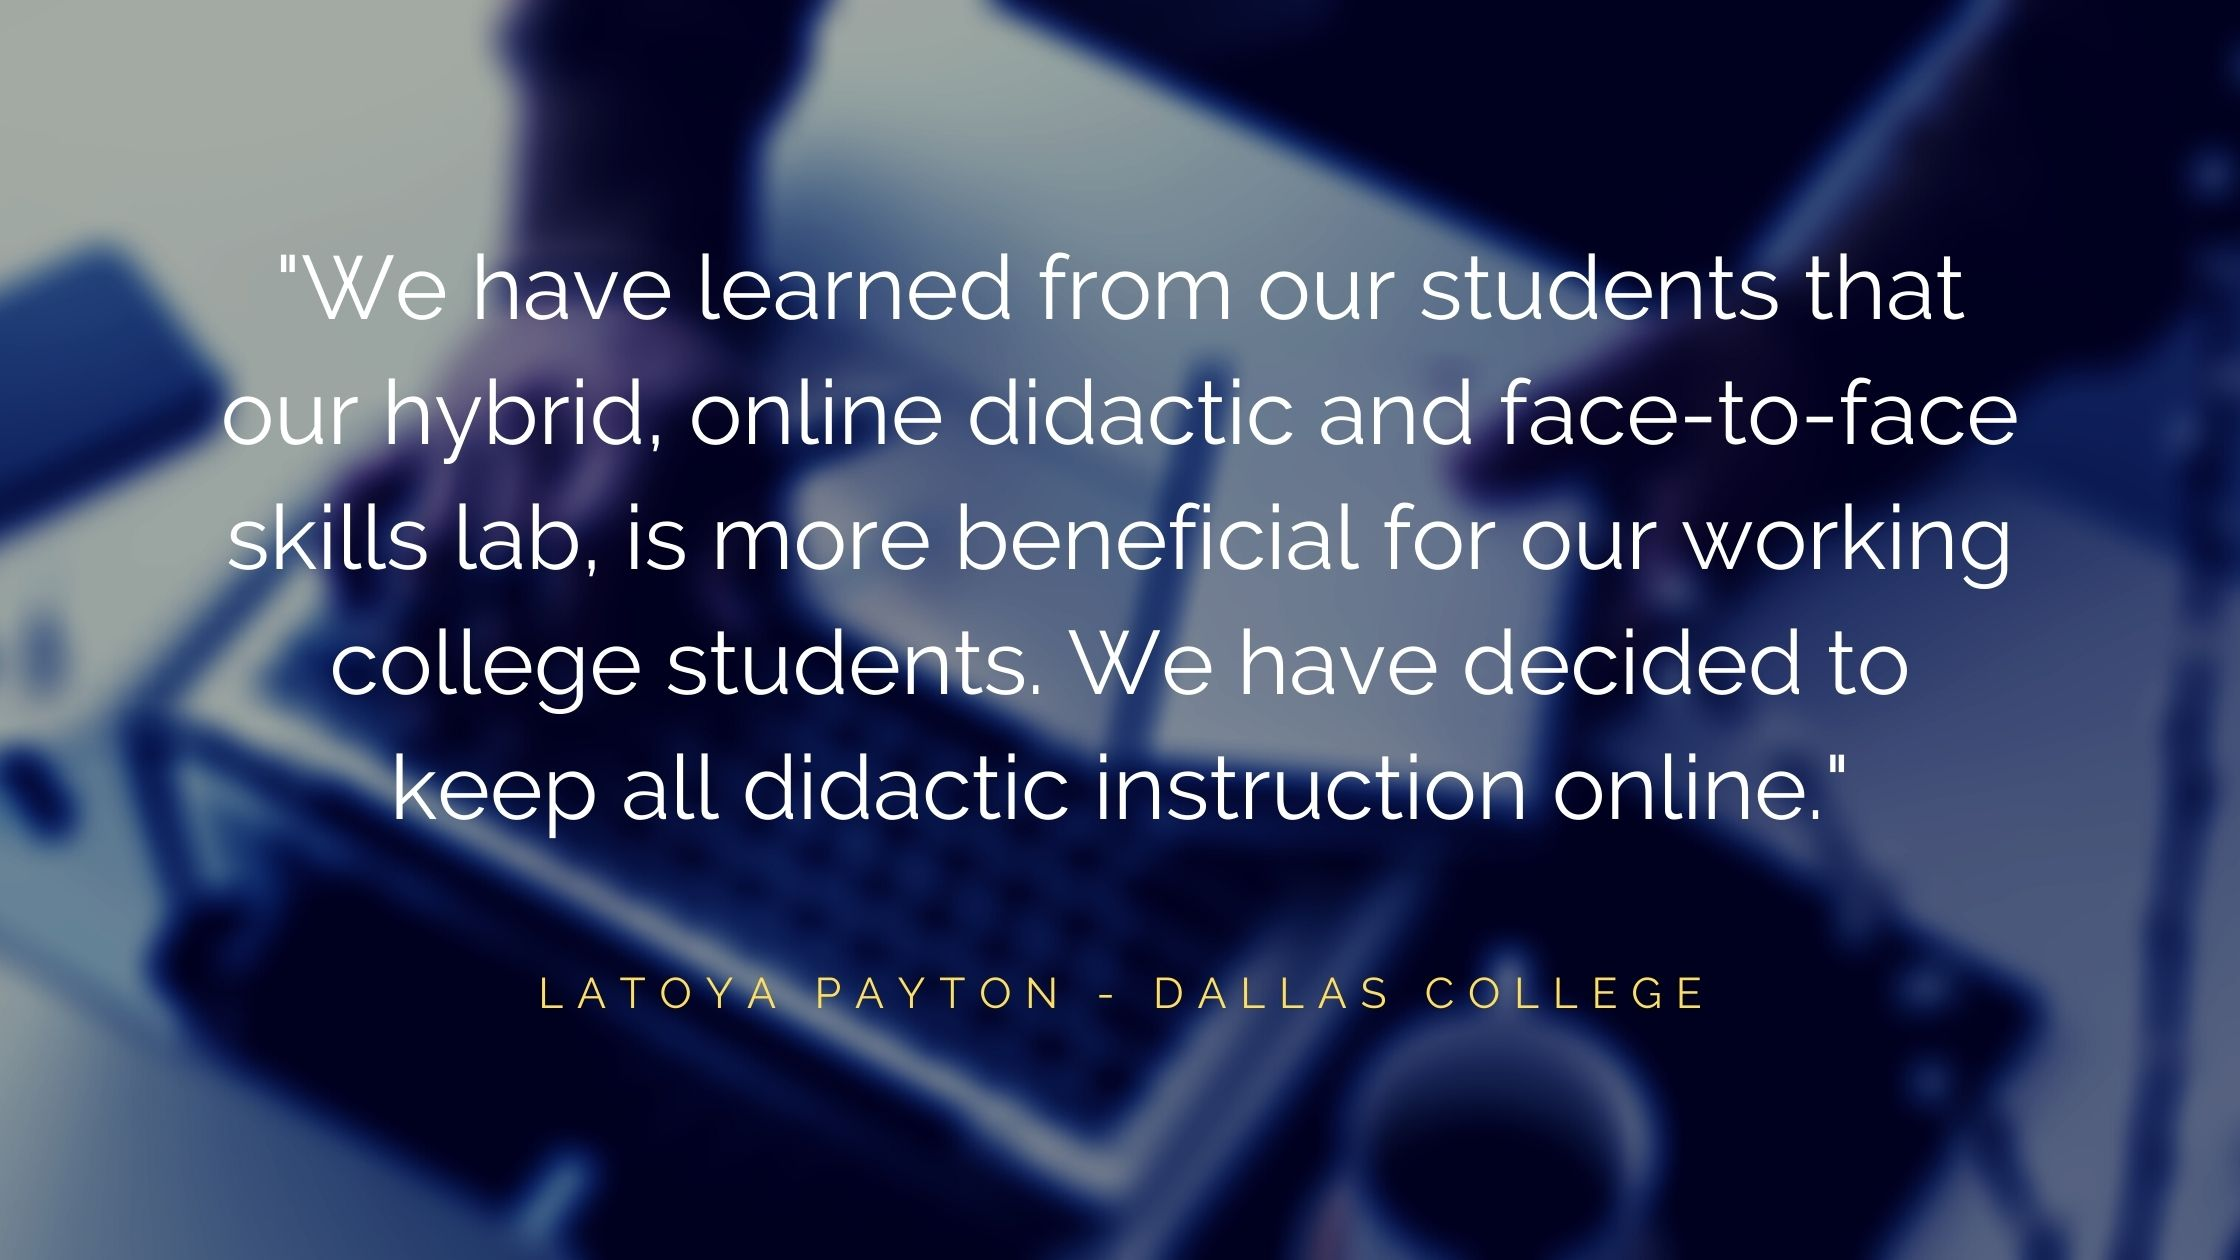 """We have learned from our students that our hybrid, online didactic and face-to-face skills lab, is more beneficial for our working college students. We have decided to keep all didactic instruction online."""